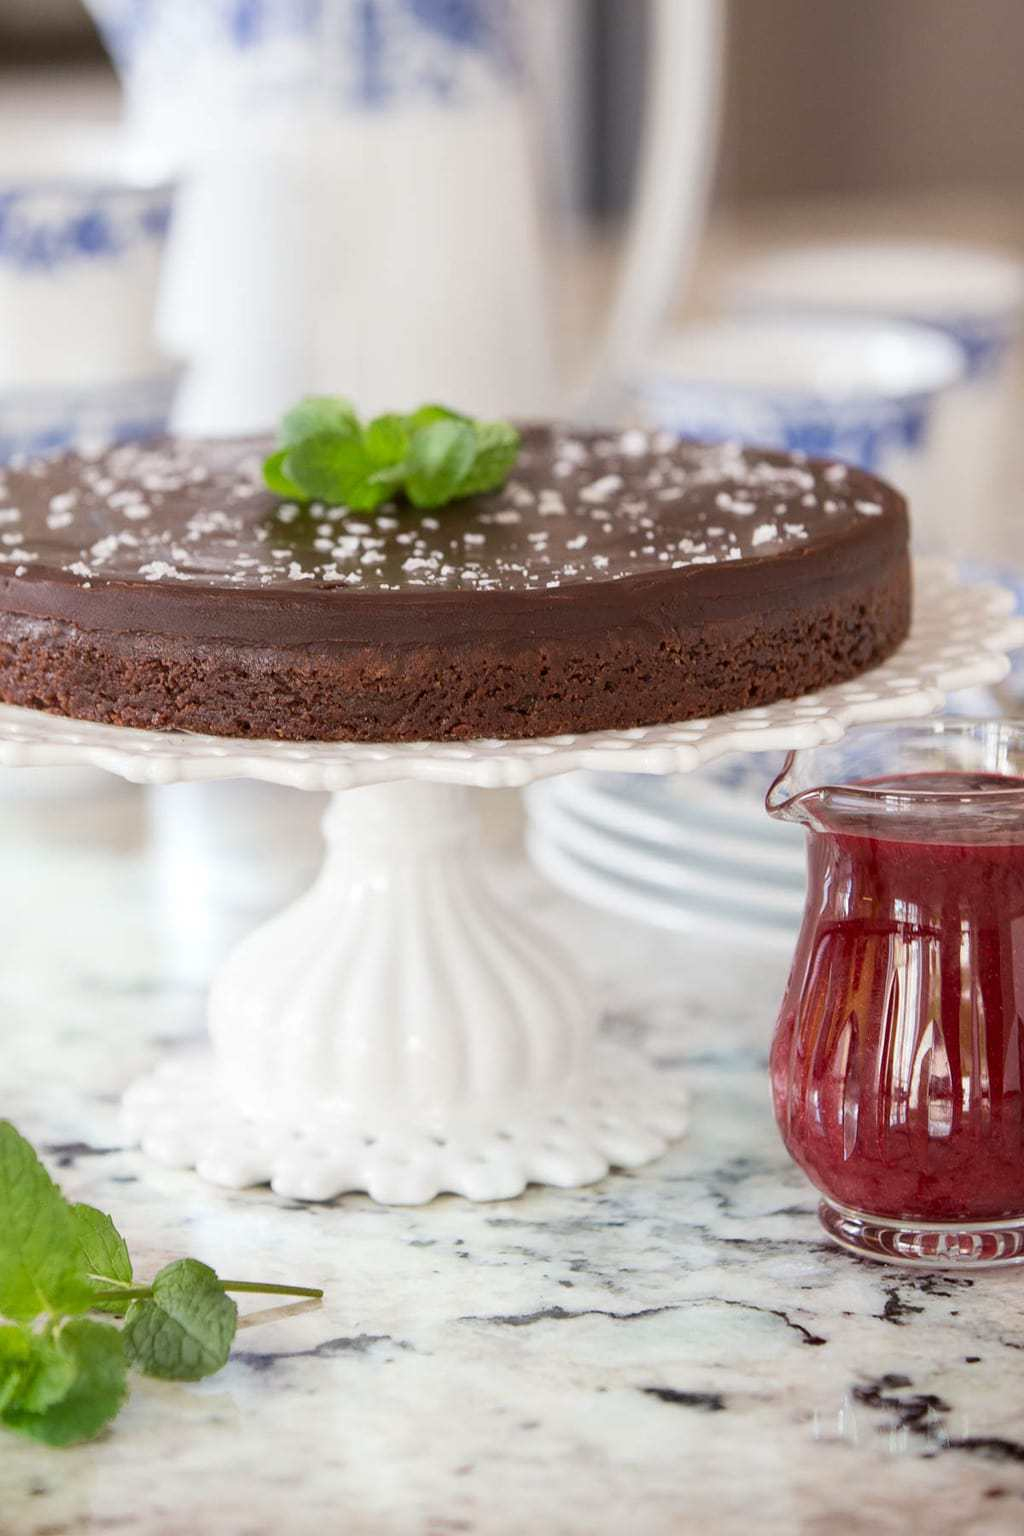 Vertical photo of Swedish Sticky Chocolate Cake on a white pedestal cake stand garnished with mint leaves.